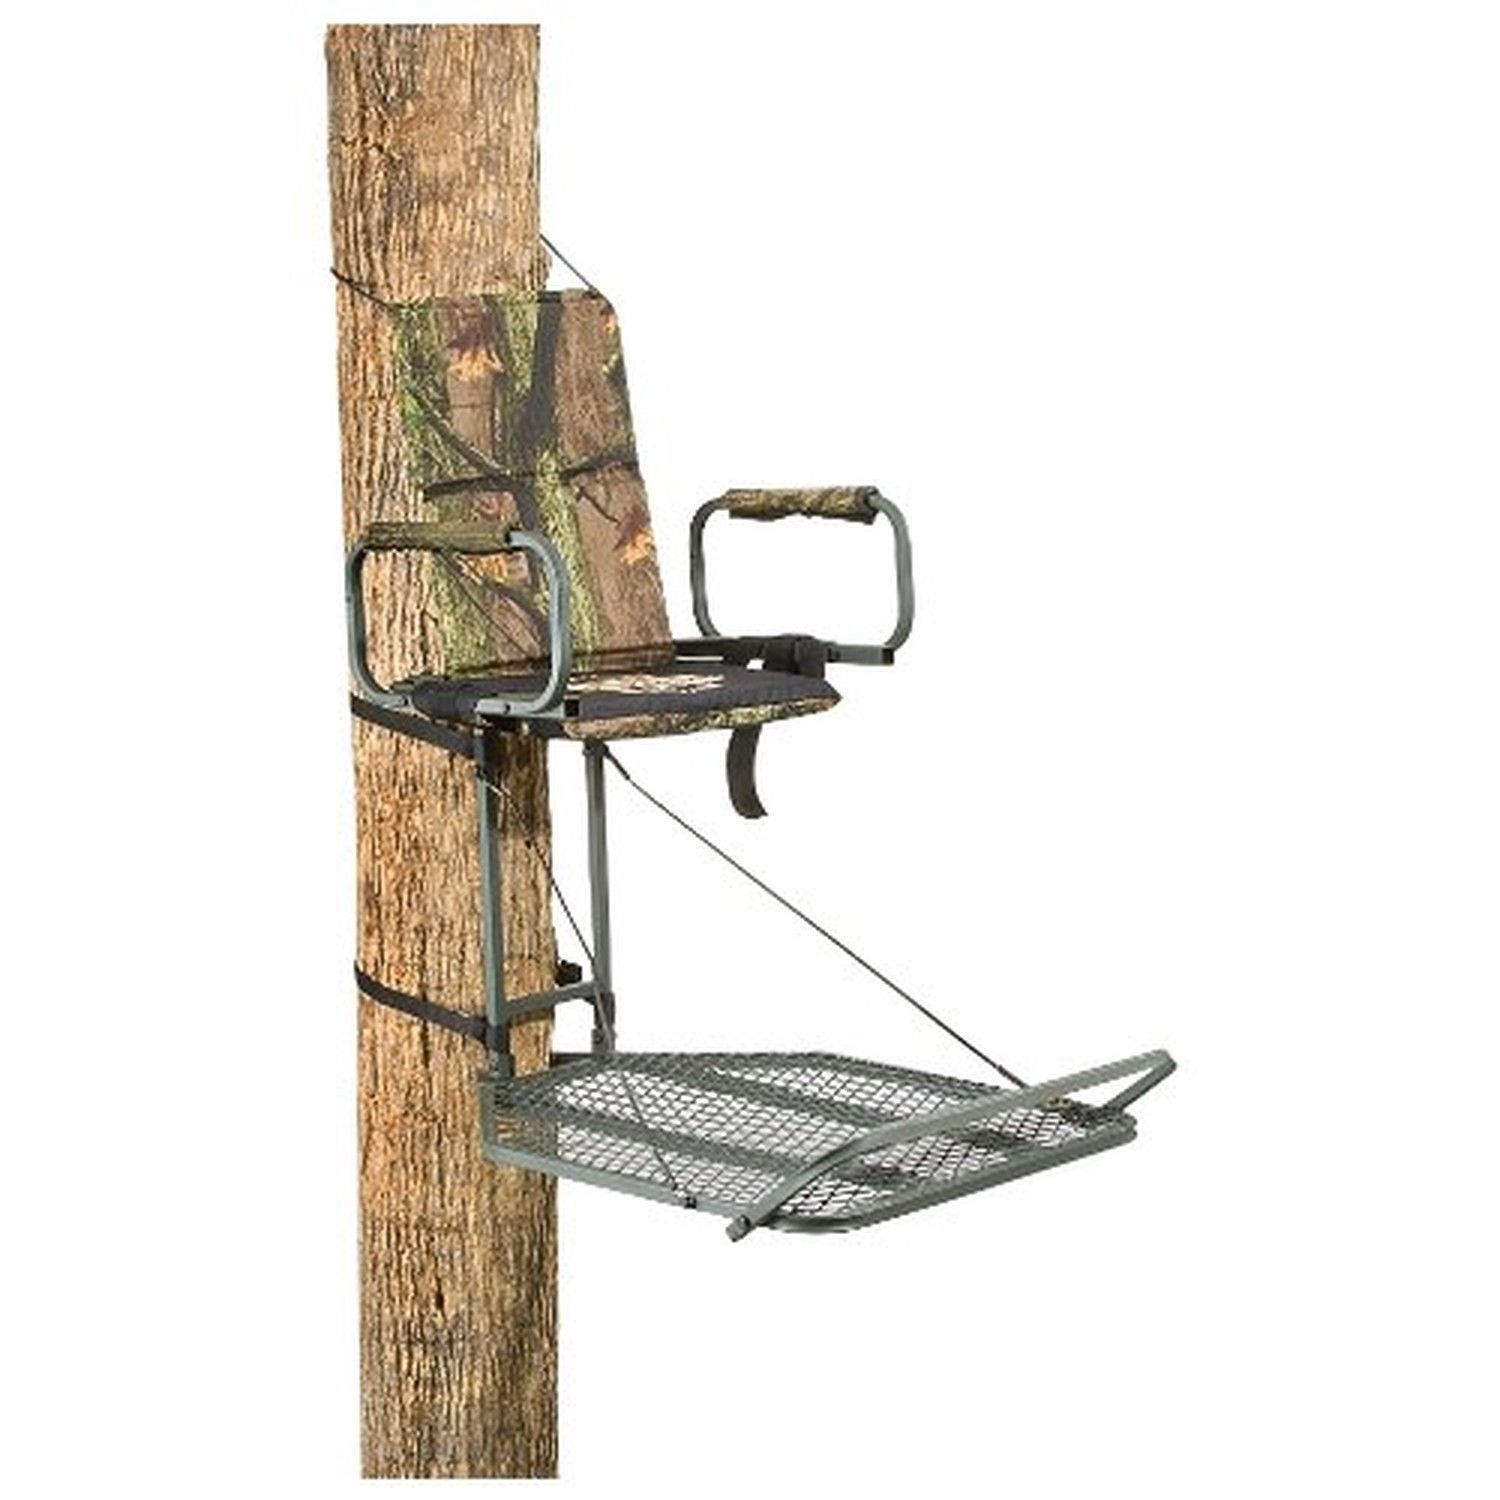 tree stand Tree Stand Safety Harness Tree stand safety